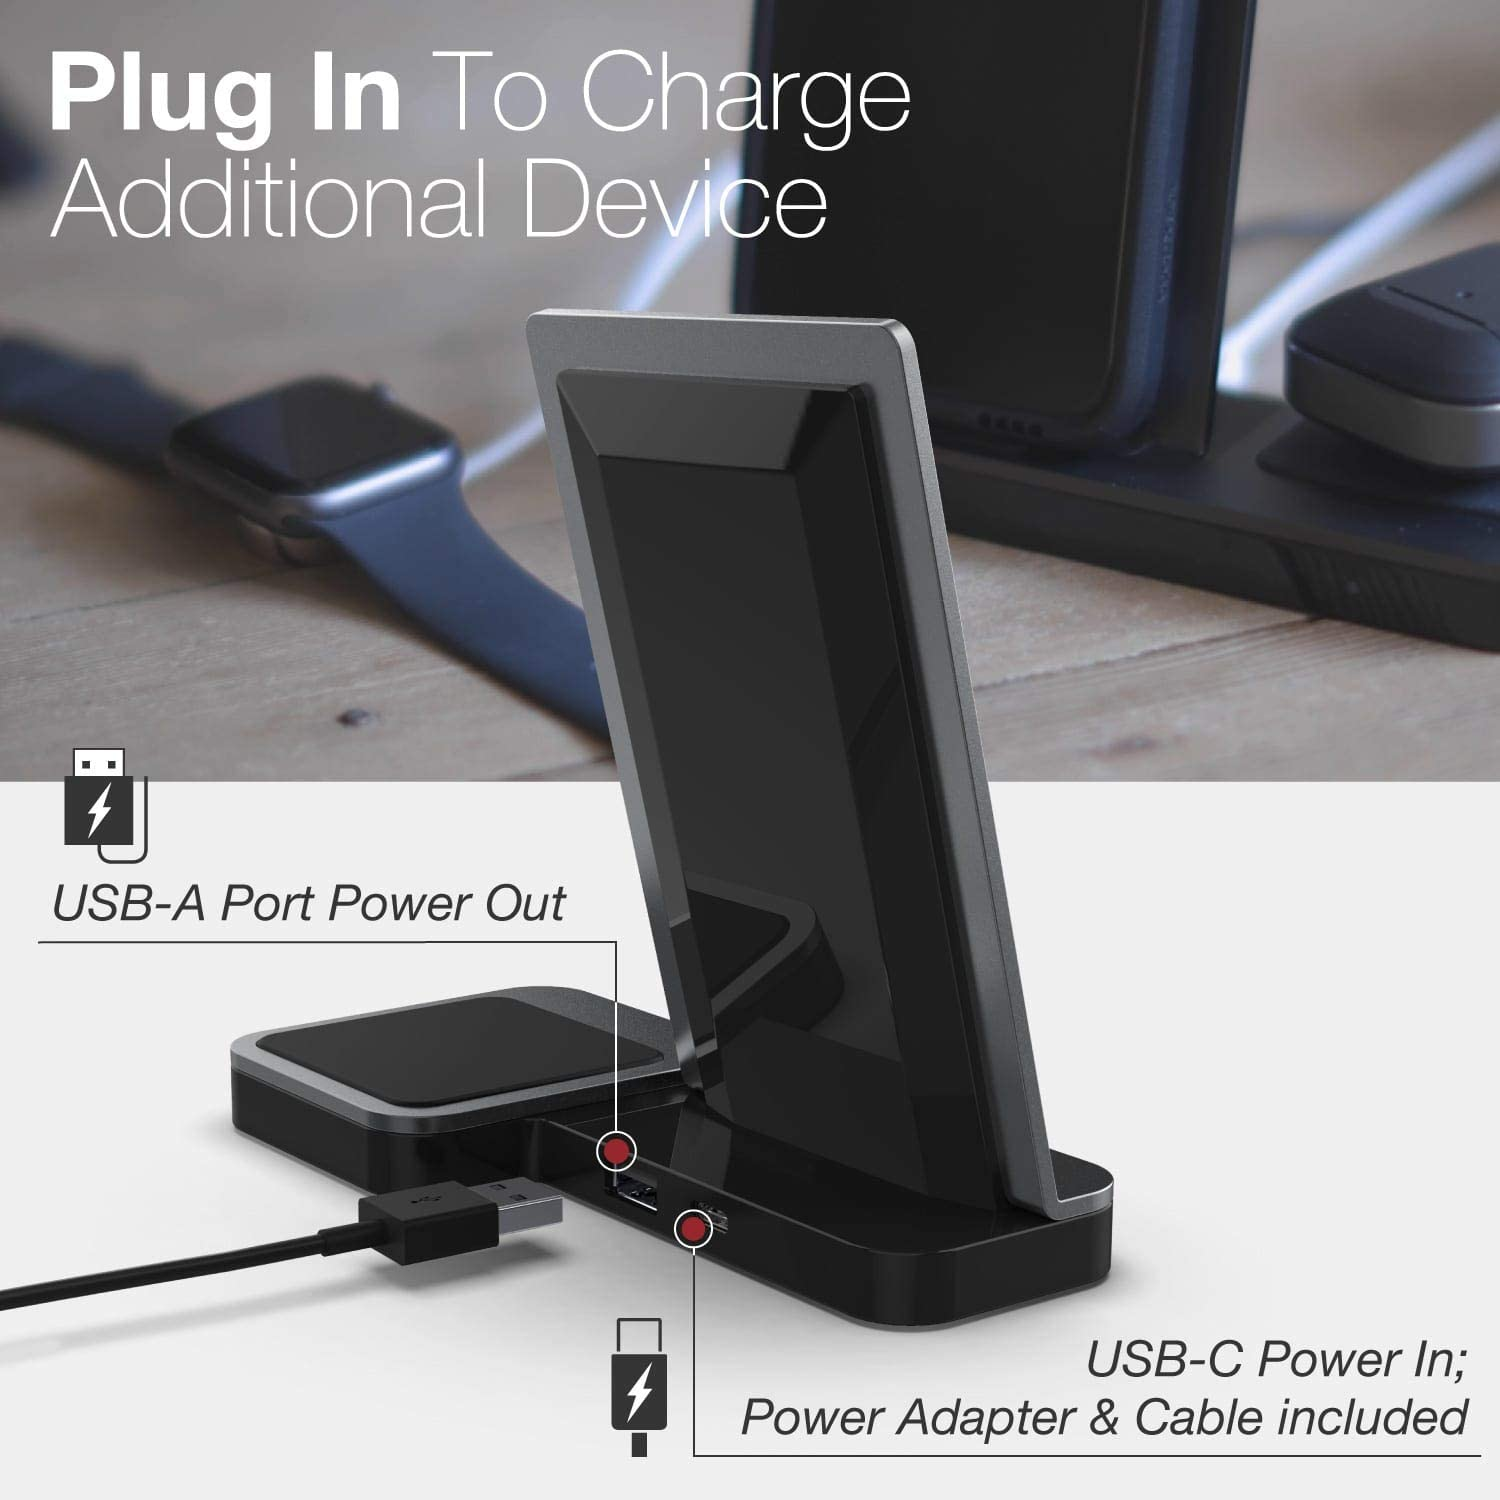 Up to 10W Fast Charging for Apple iPhone Defense Vertical Duo Charger Wireless Qi Charging Stand Black Note and Other Qi Devices Samsung Galaxy Machined Aluminum Frame